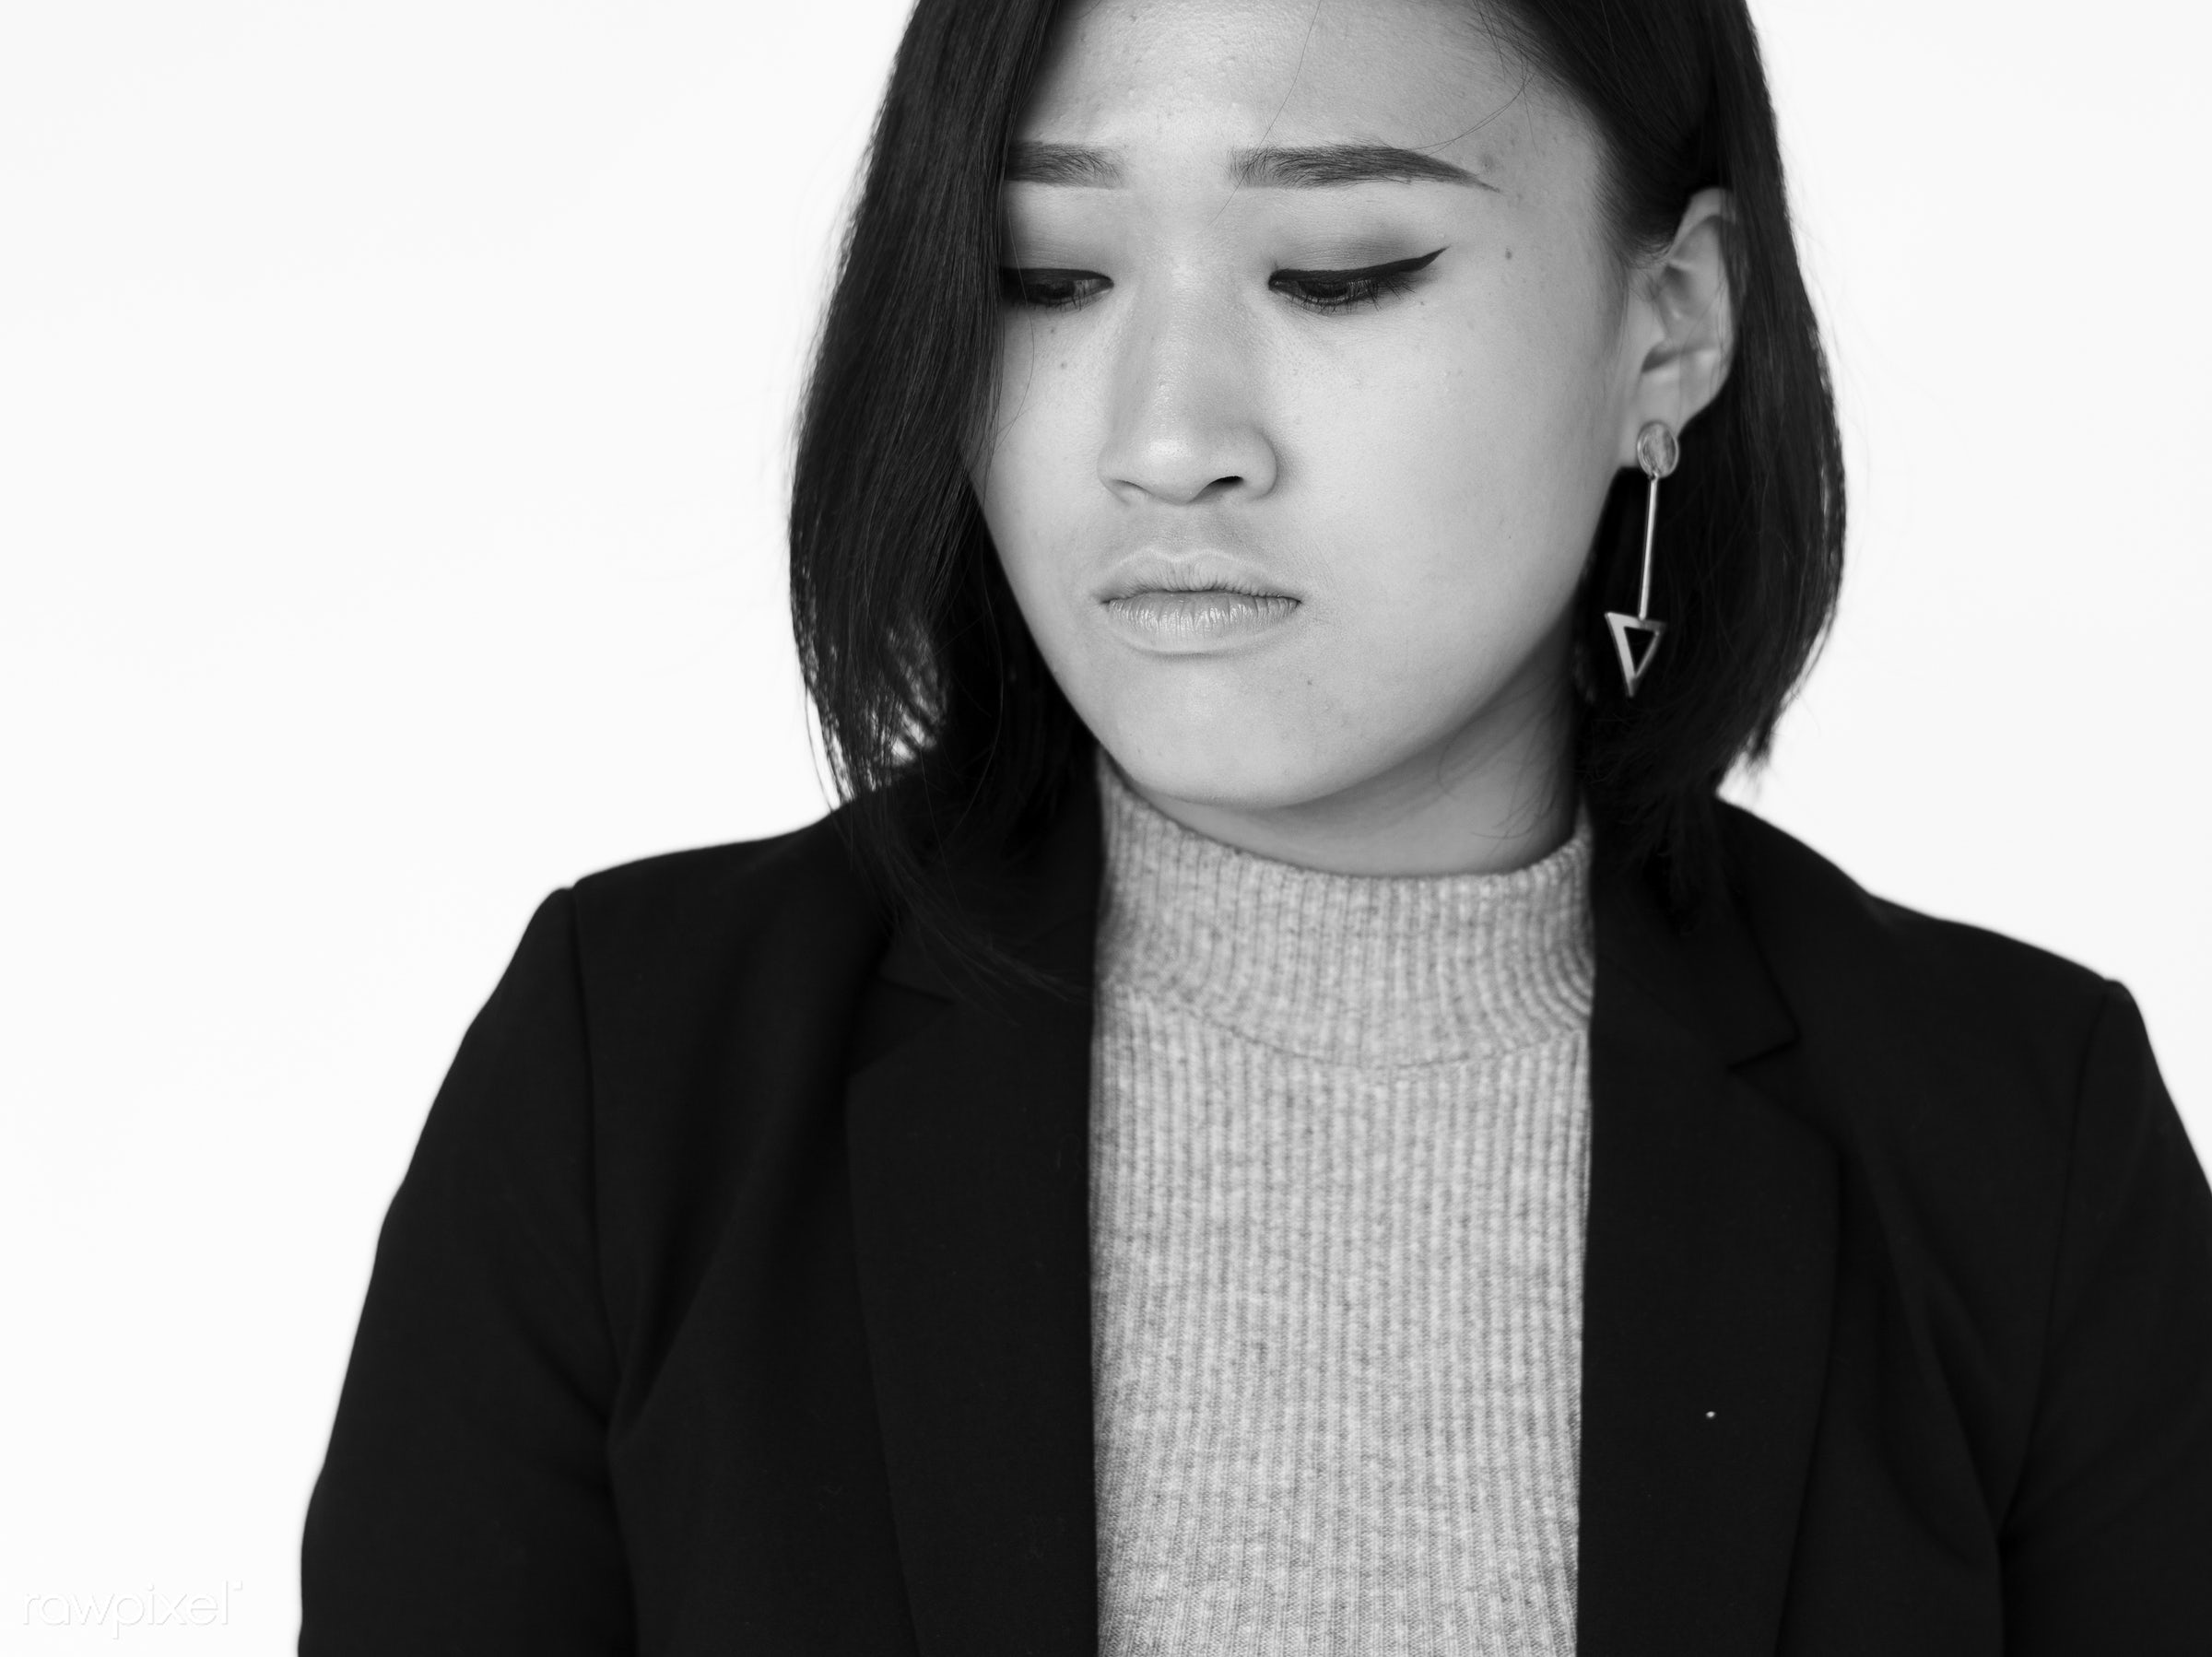 expression, studio, face, person, model, isolated on white, sad, issue, people, business, asian, concerned, style, woman,...